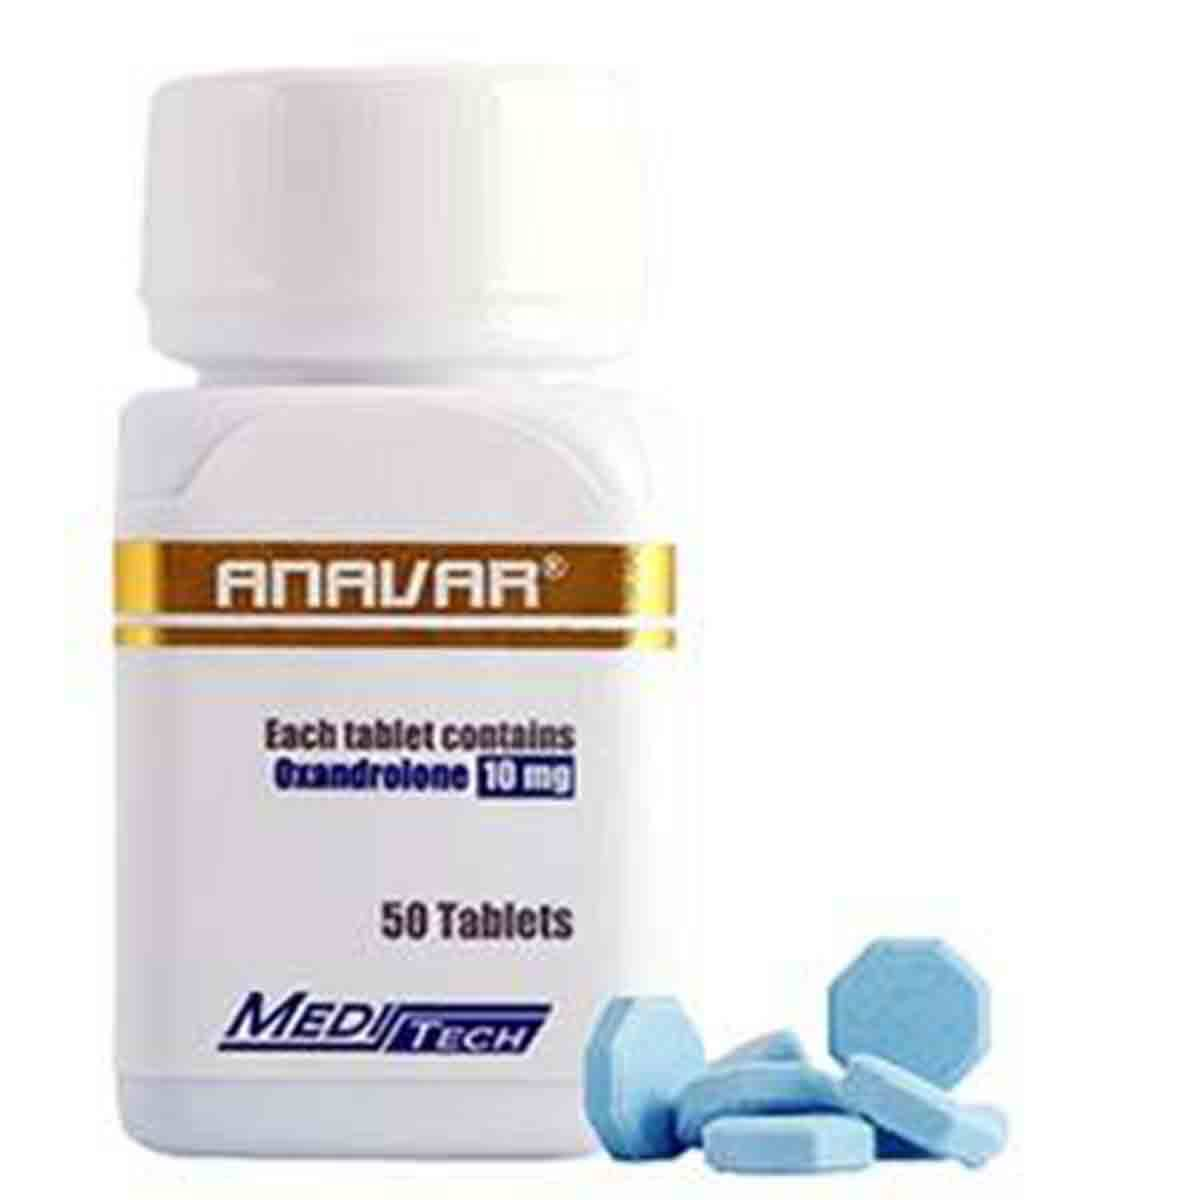 Muscle Watchdog | Anavar Ingredient Investigation